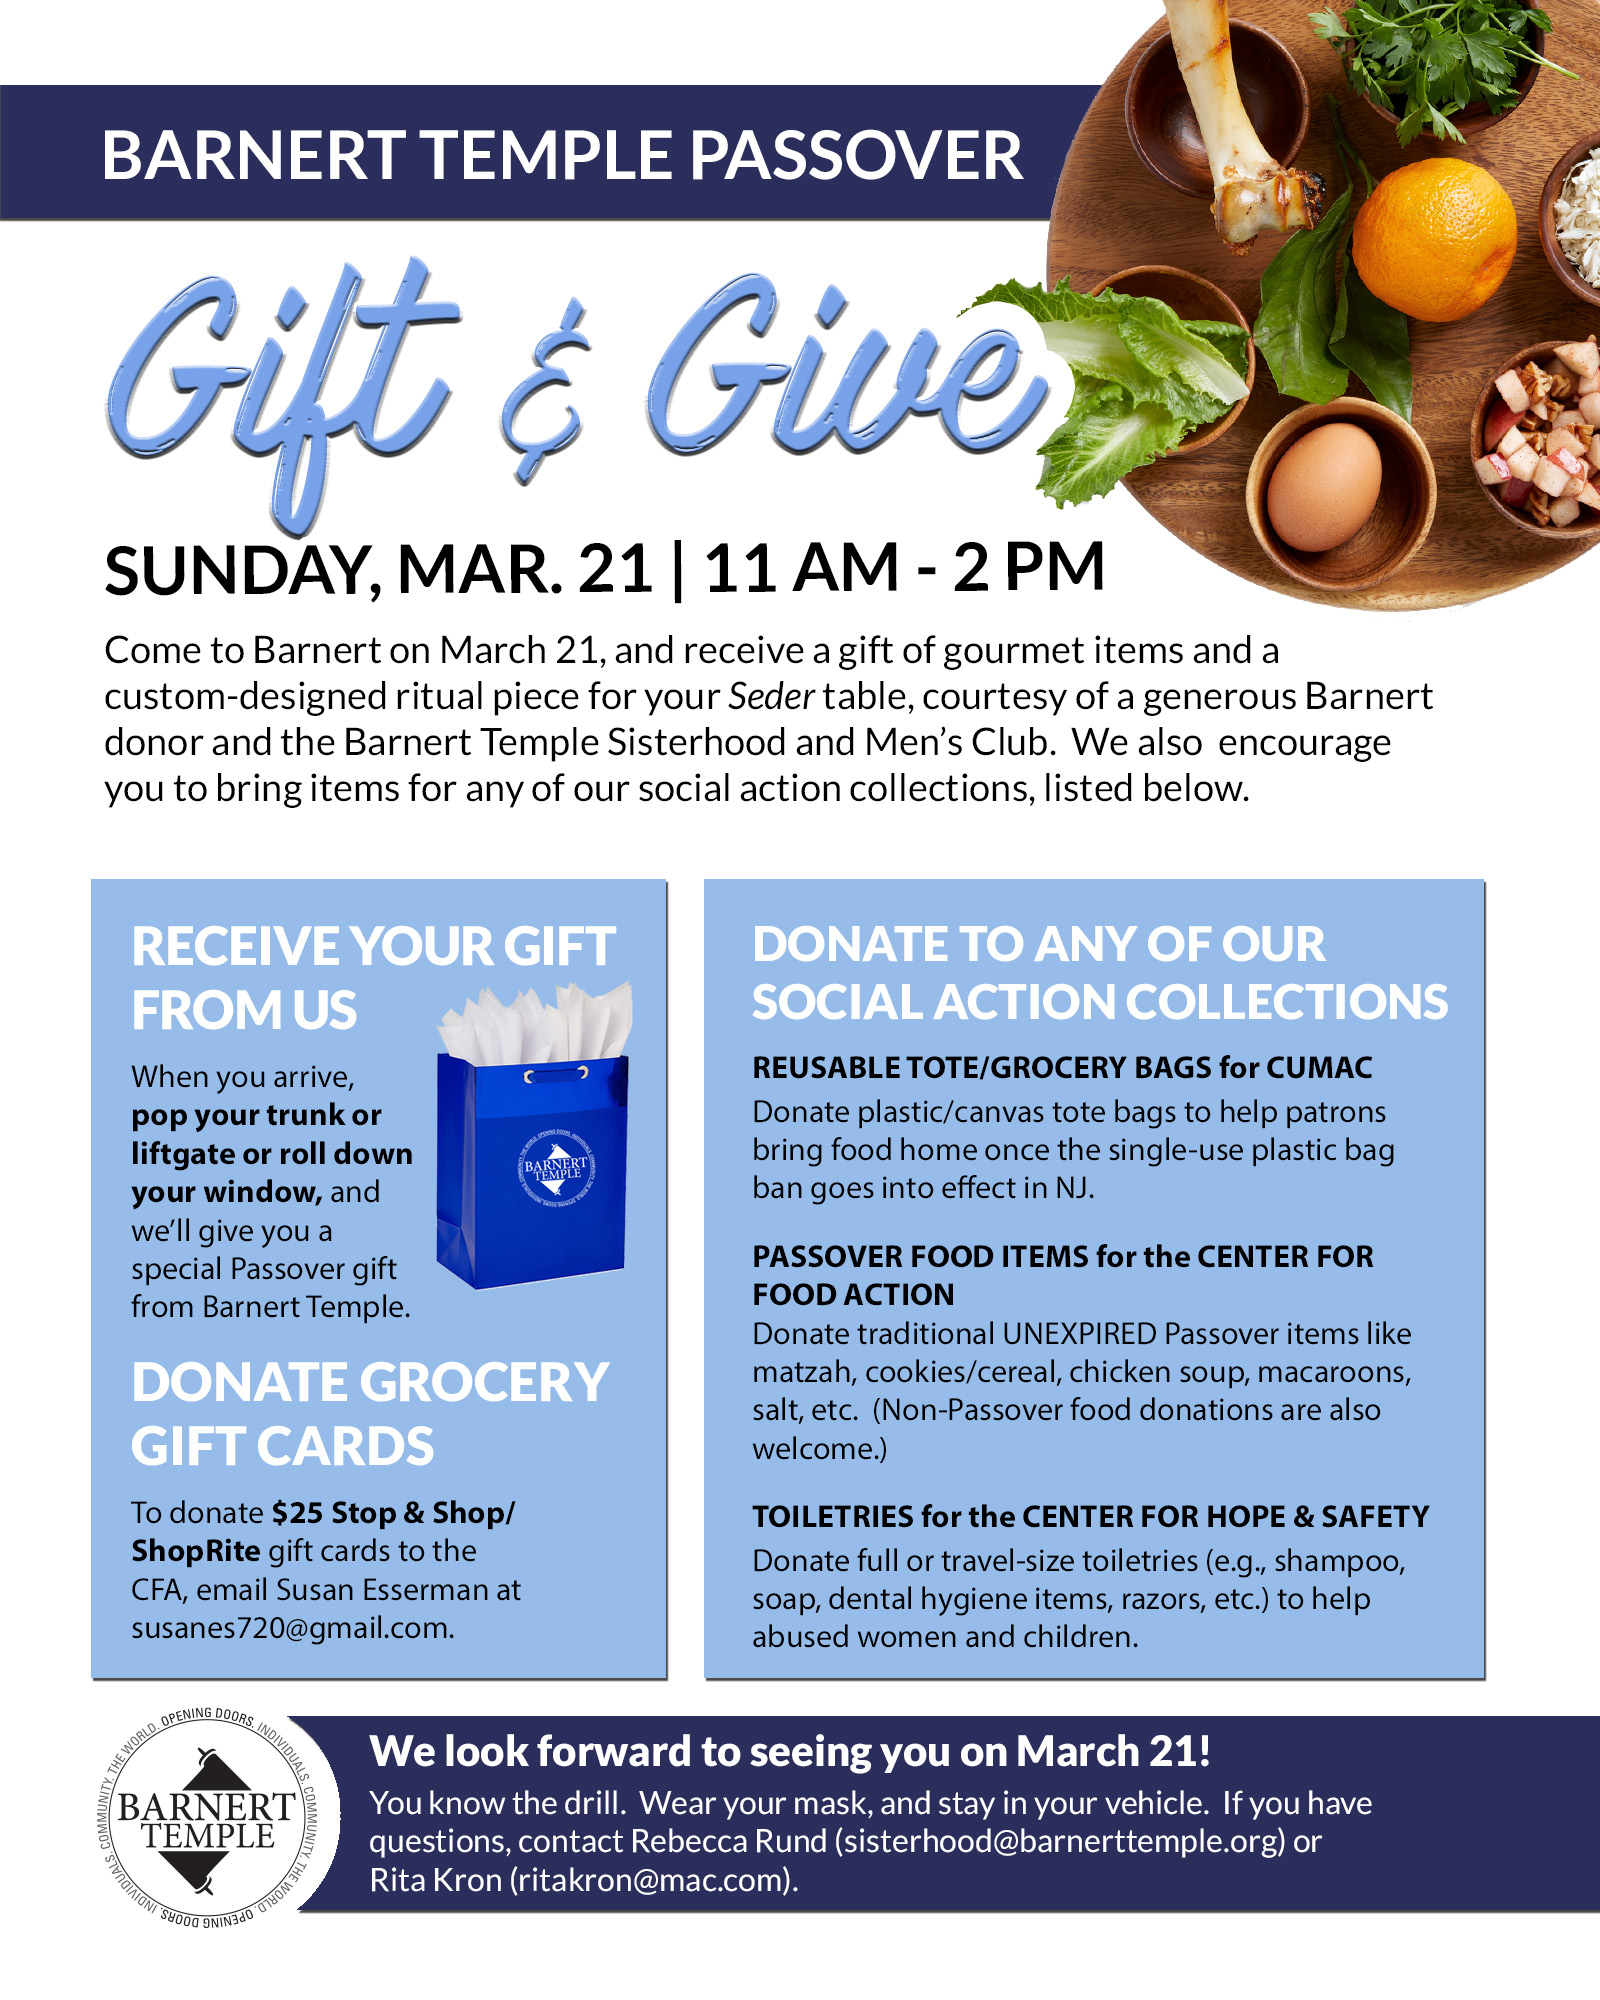 Passover Gift & Give Flyer